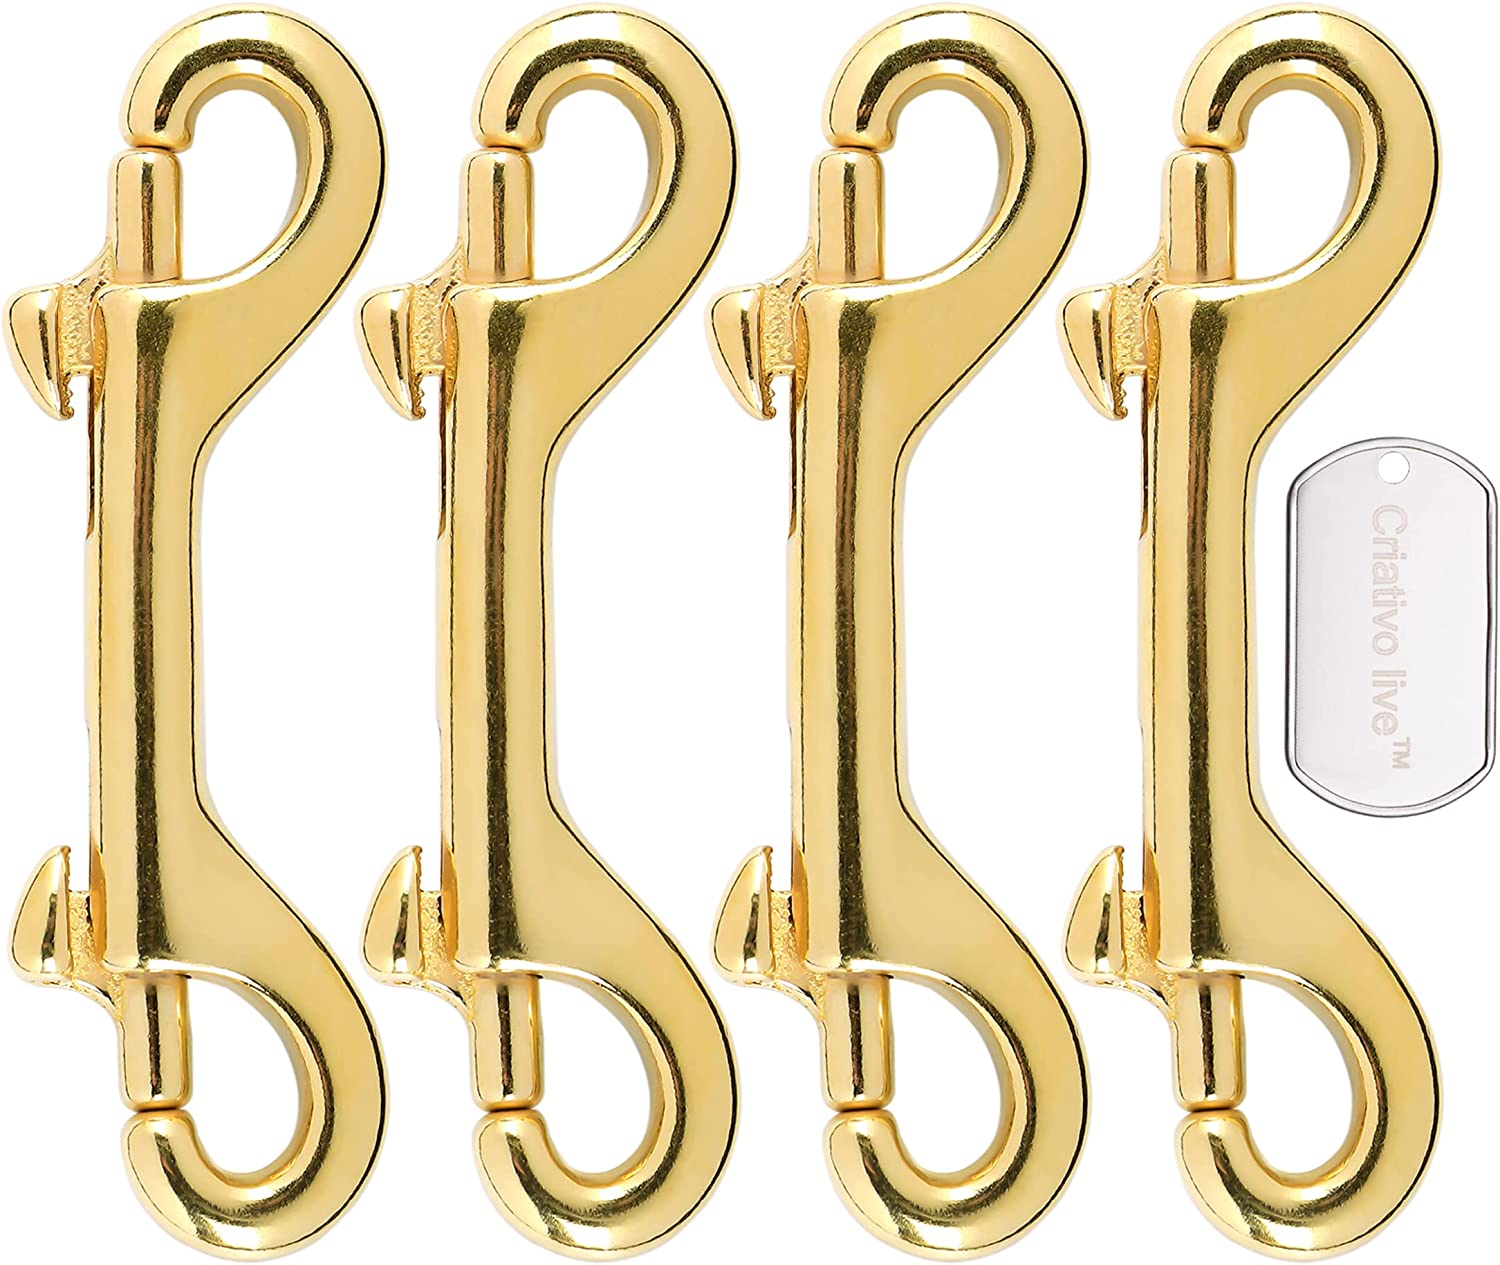 Brass Double End Snap Max 90% OFF Hook Regular store Clip for Diving 4